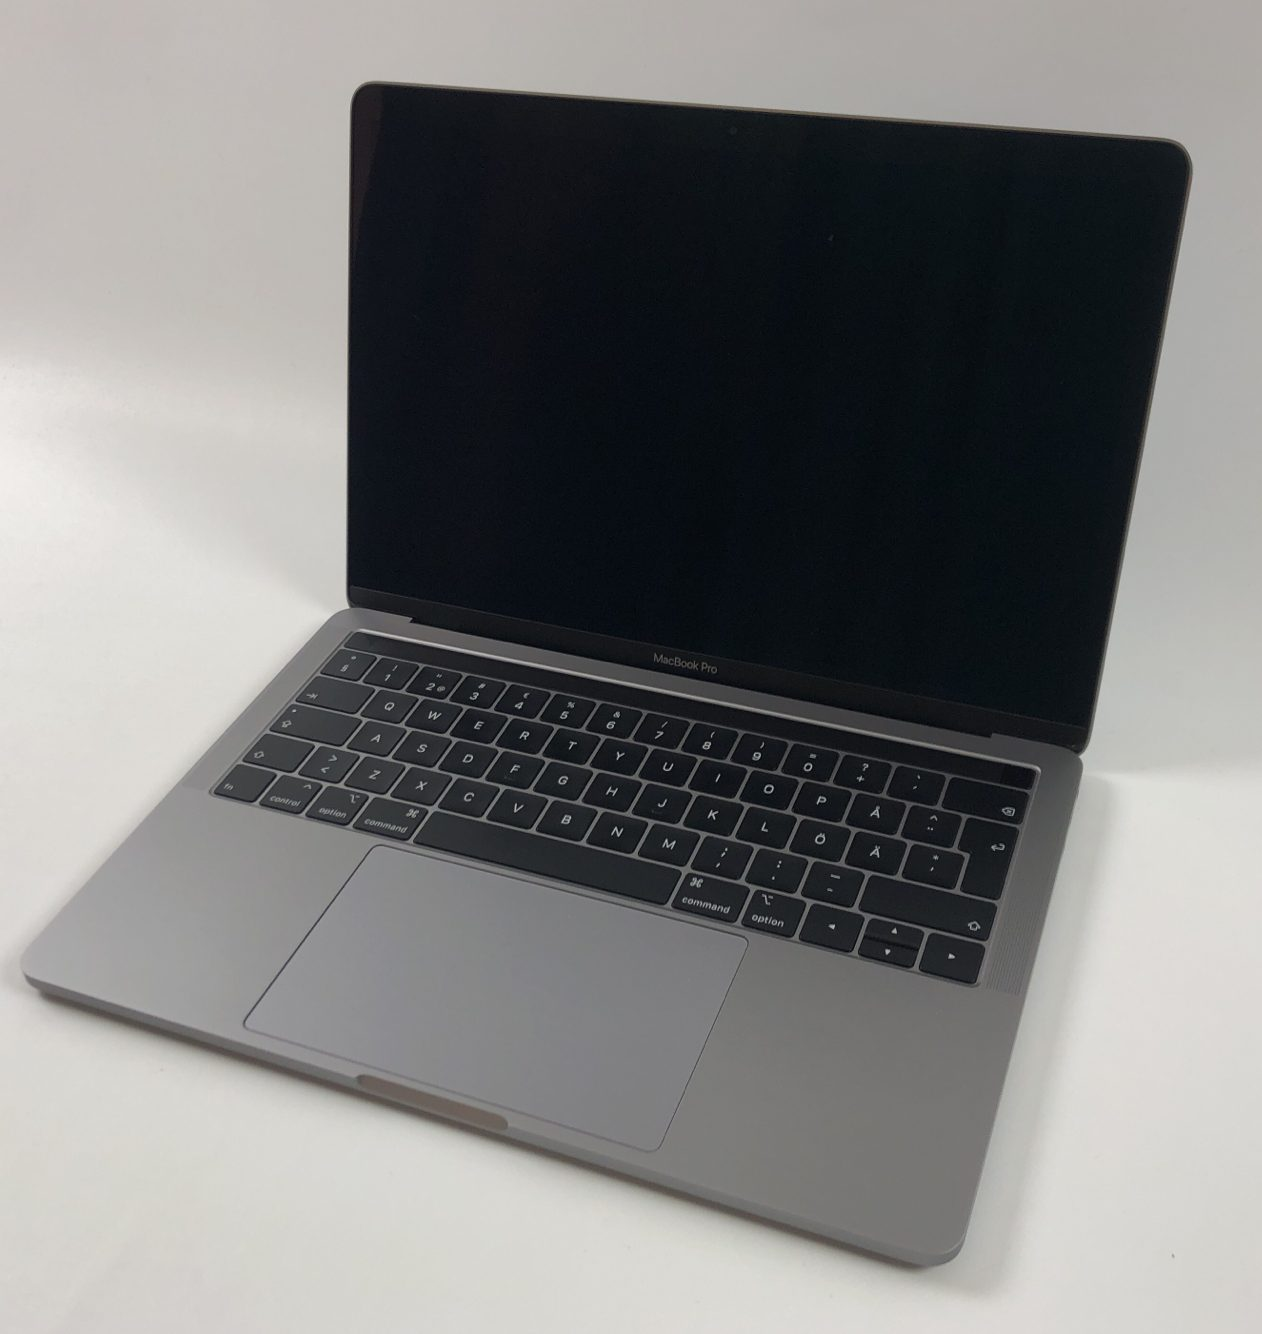 "MacBook Pro 13"" 4TBT Mid 2018 (Intel Quad-Core i5 2.3 GHz 8 GB RAM 512 GB SSD), Space Gray, Intel Quad-Core i5 2.3 GHz, 8 GB RAM, 512 GB SSD, bild 1"